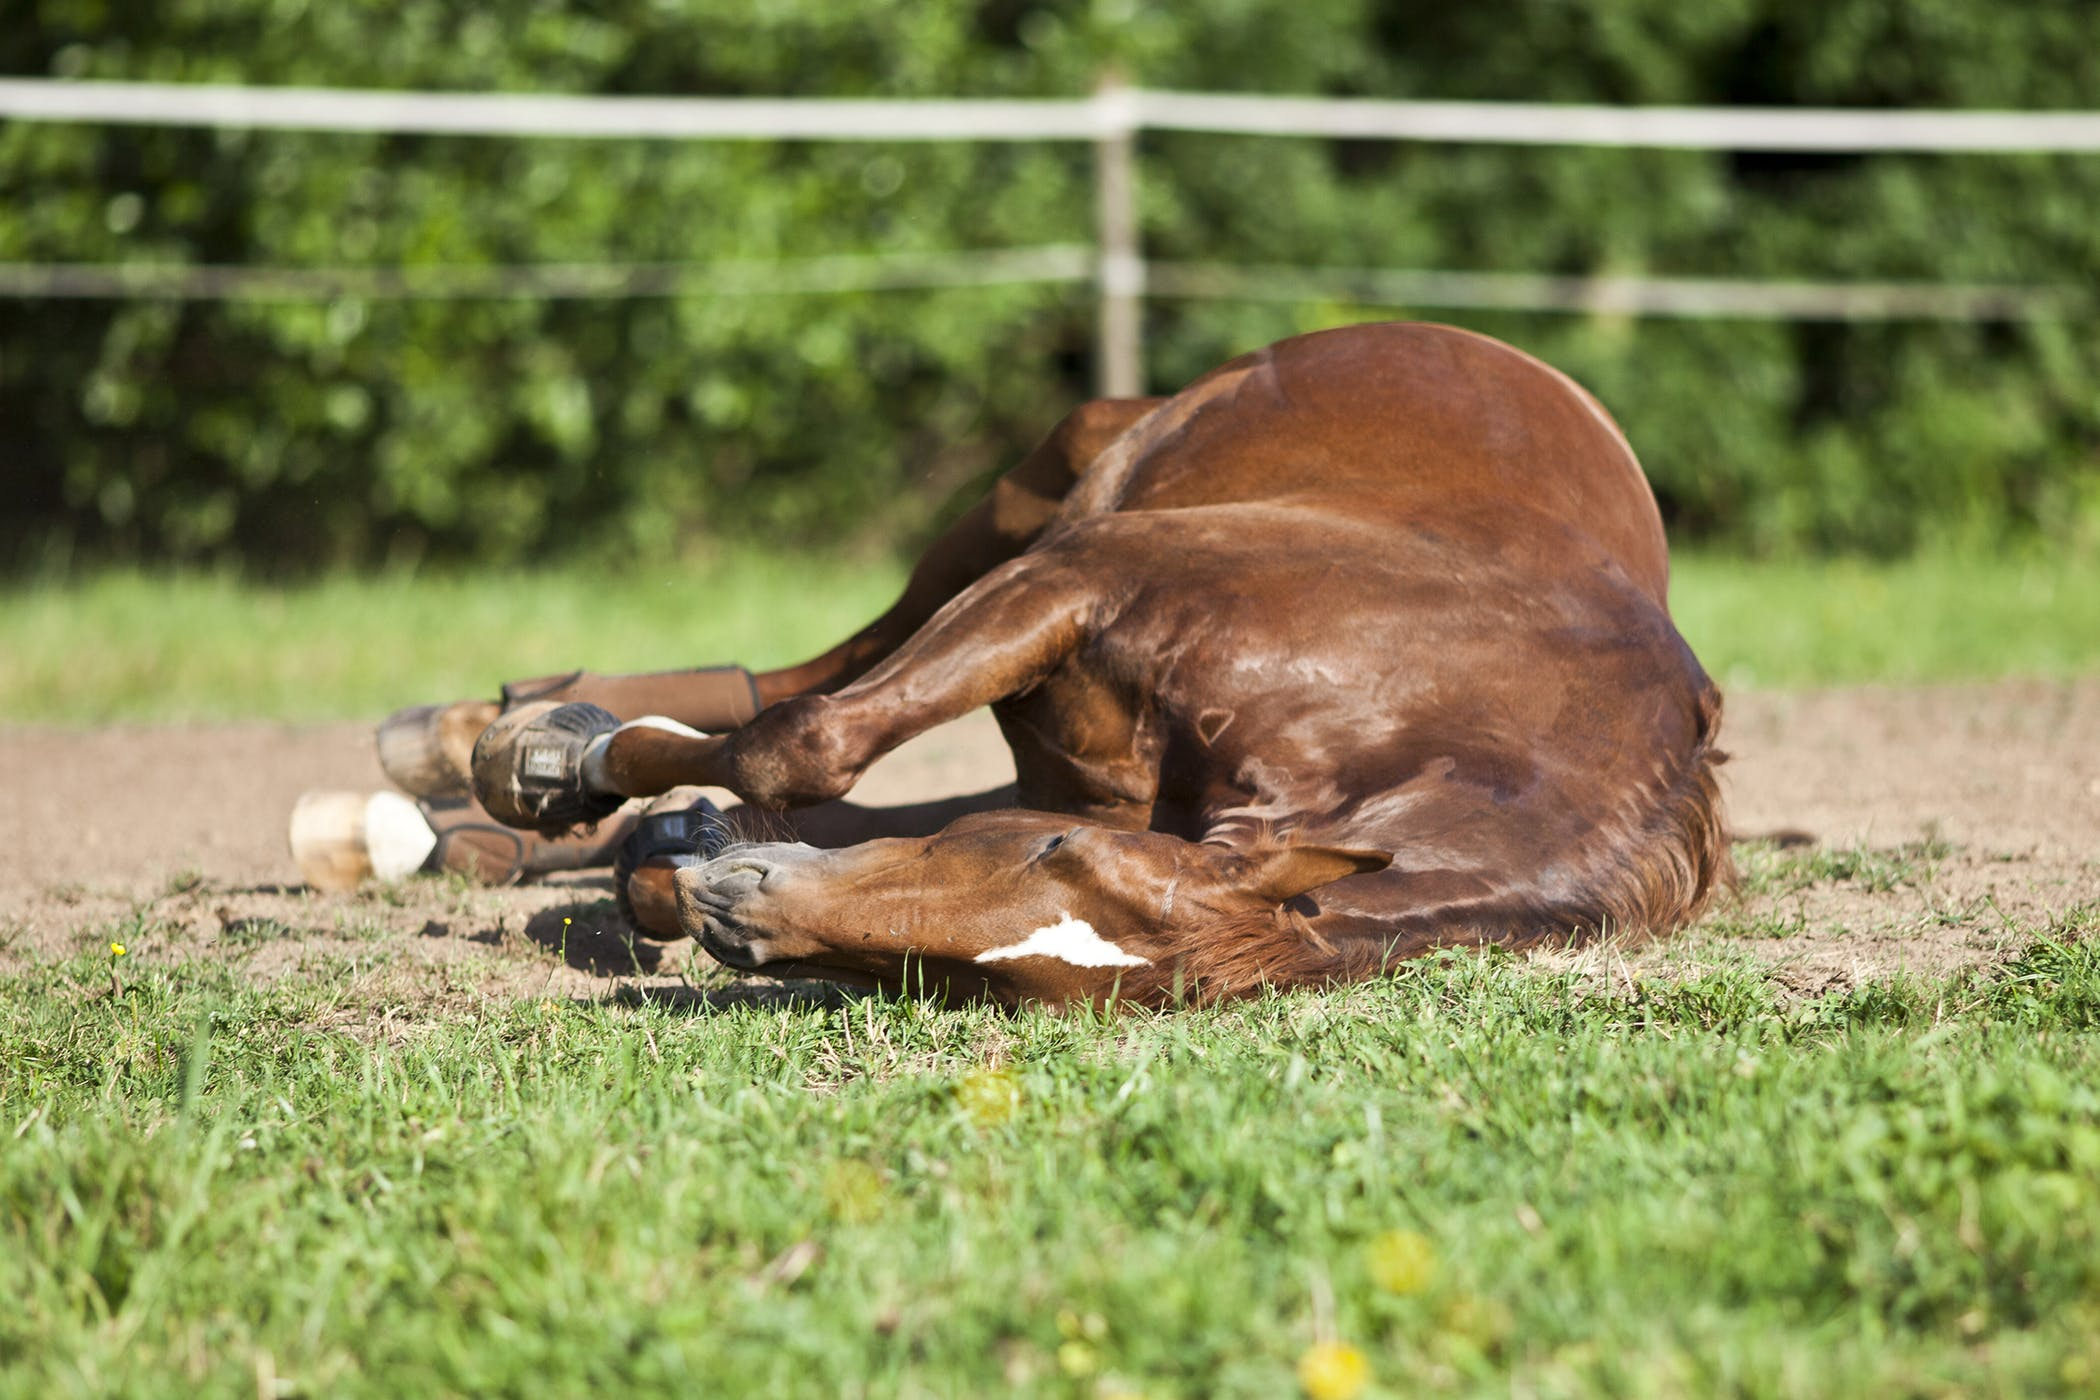 Retained Placenta in Horses - Symptoms, Causes, Diagnosis